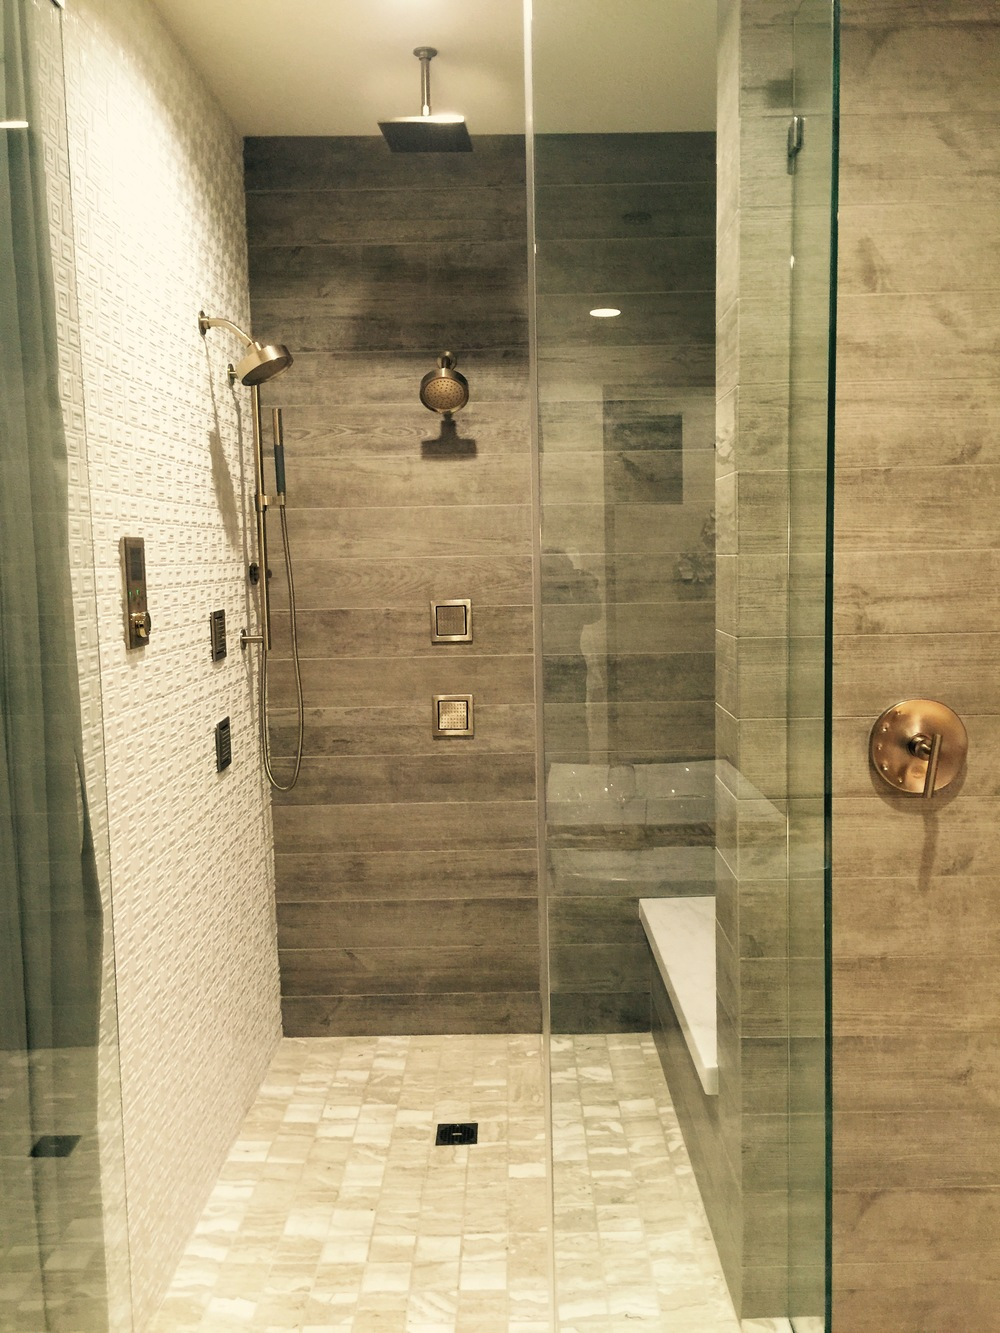 Master shower featuring wood look tile, which looks awesome, btw! We know it's not real wood, but it's bringing a natural look to the space.